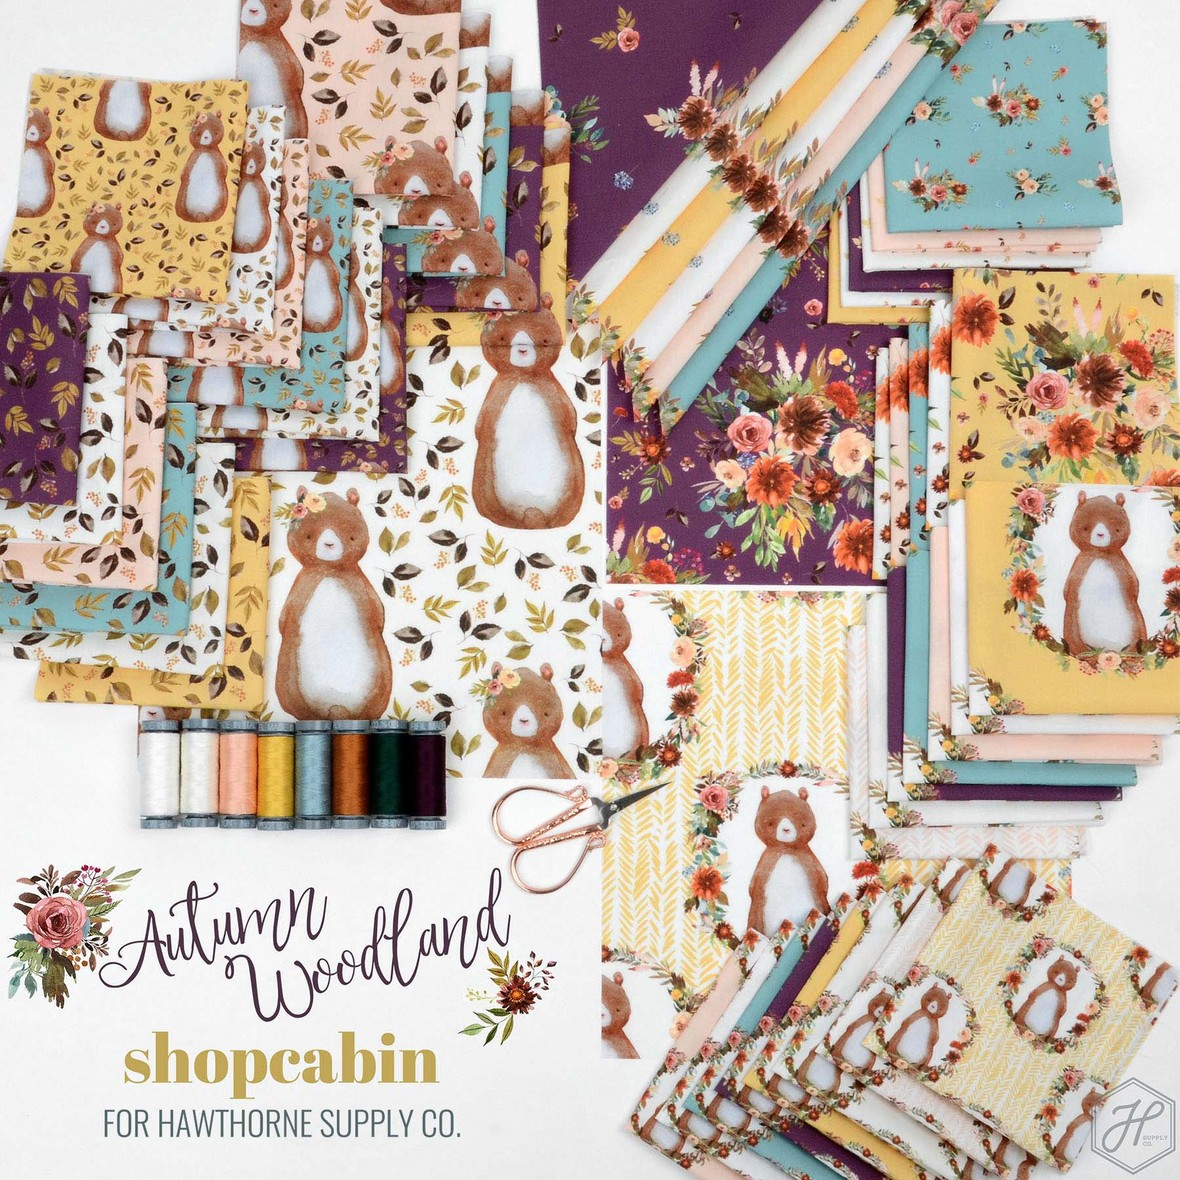 Autumn Woodland Fabric Poter Shopcabin for Hawthorne Supply Co megs edits